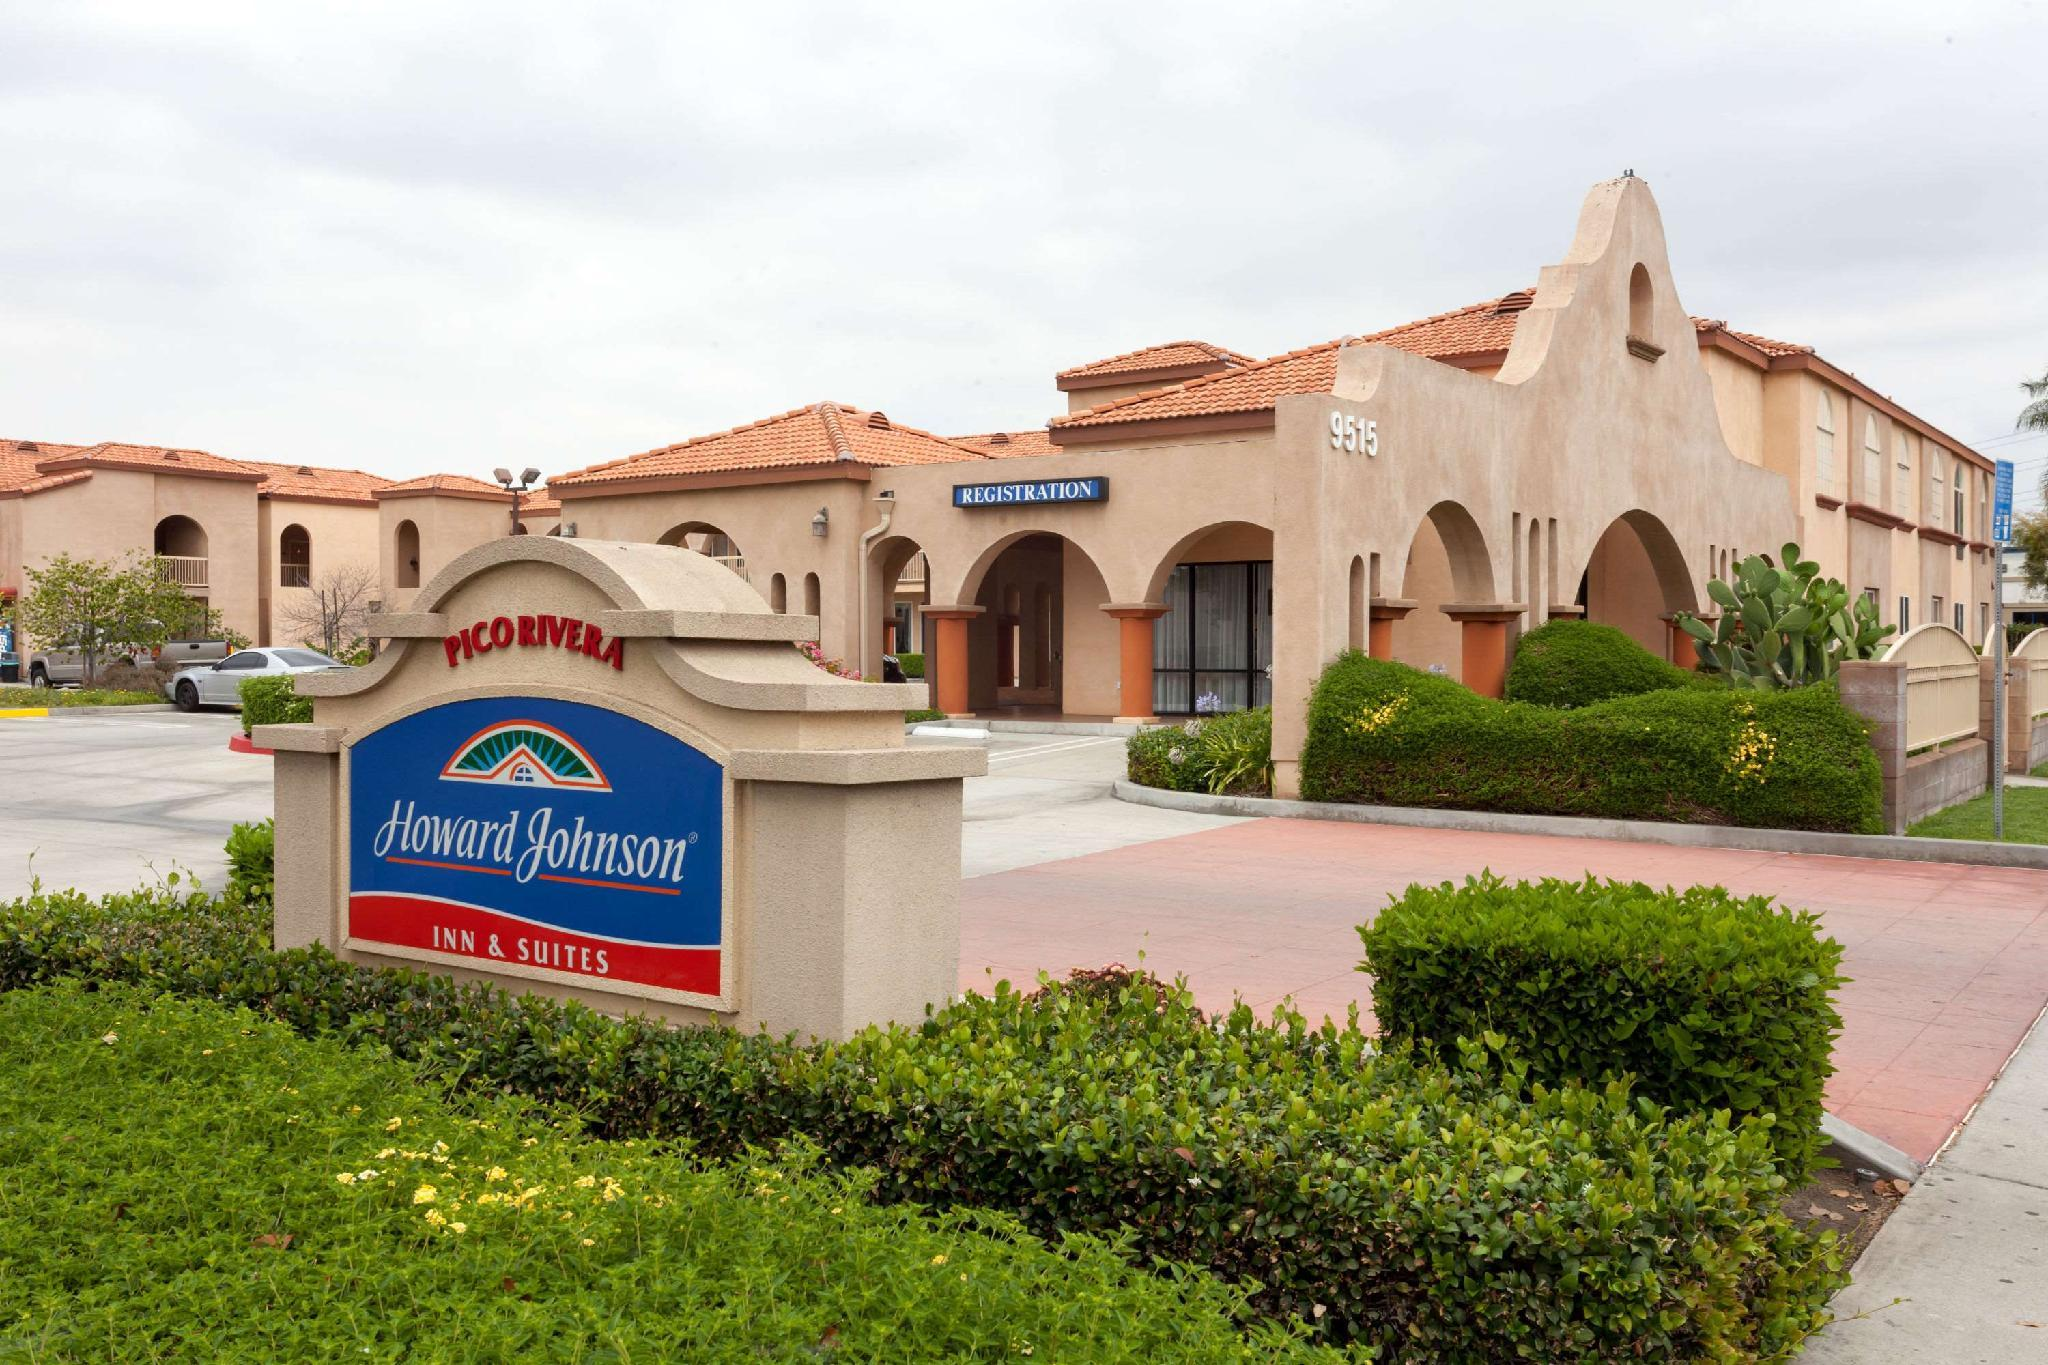 Howard Johnson Hotel And Suites By Wyndham Pico Rivera